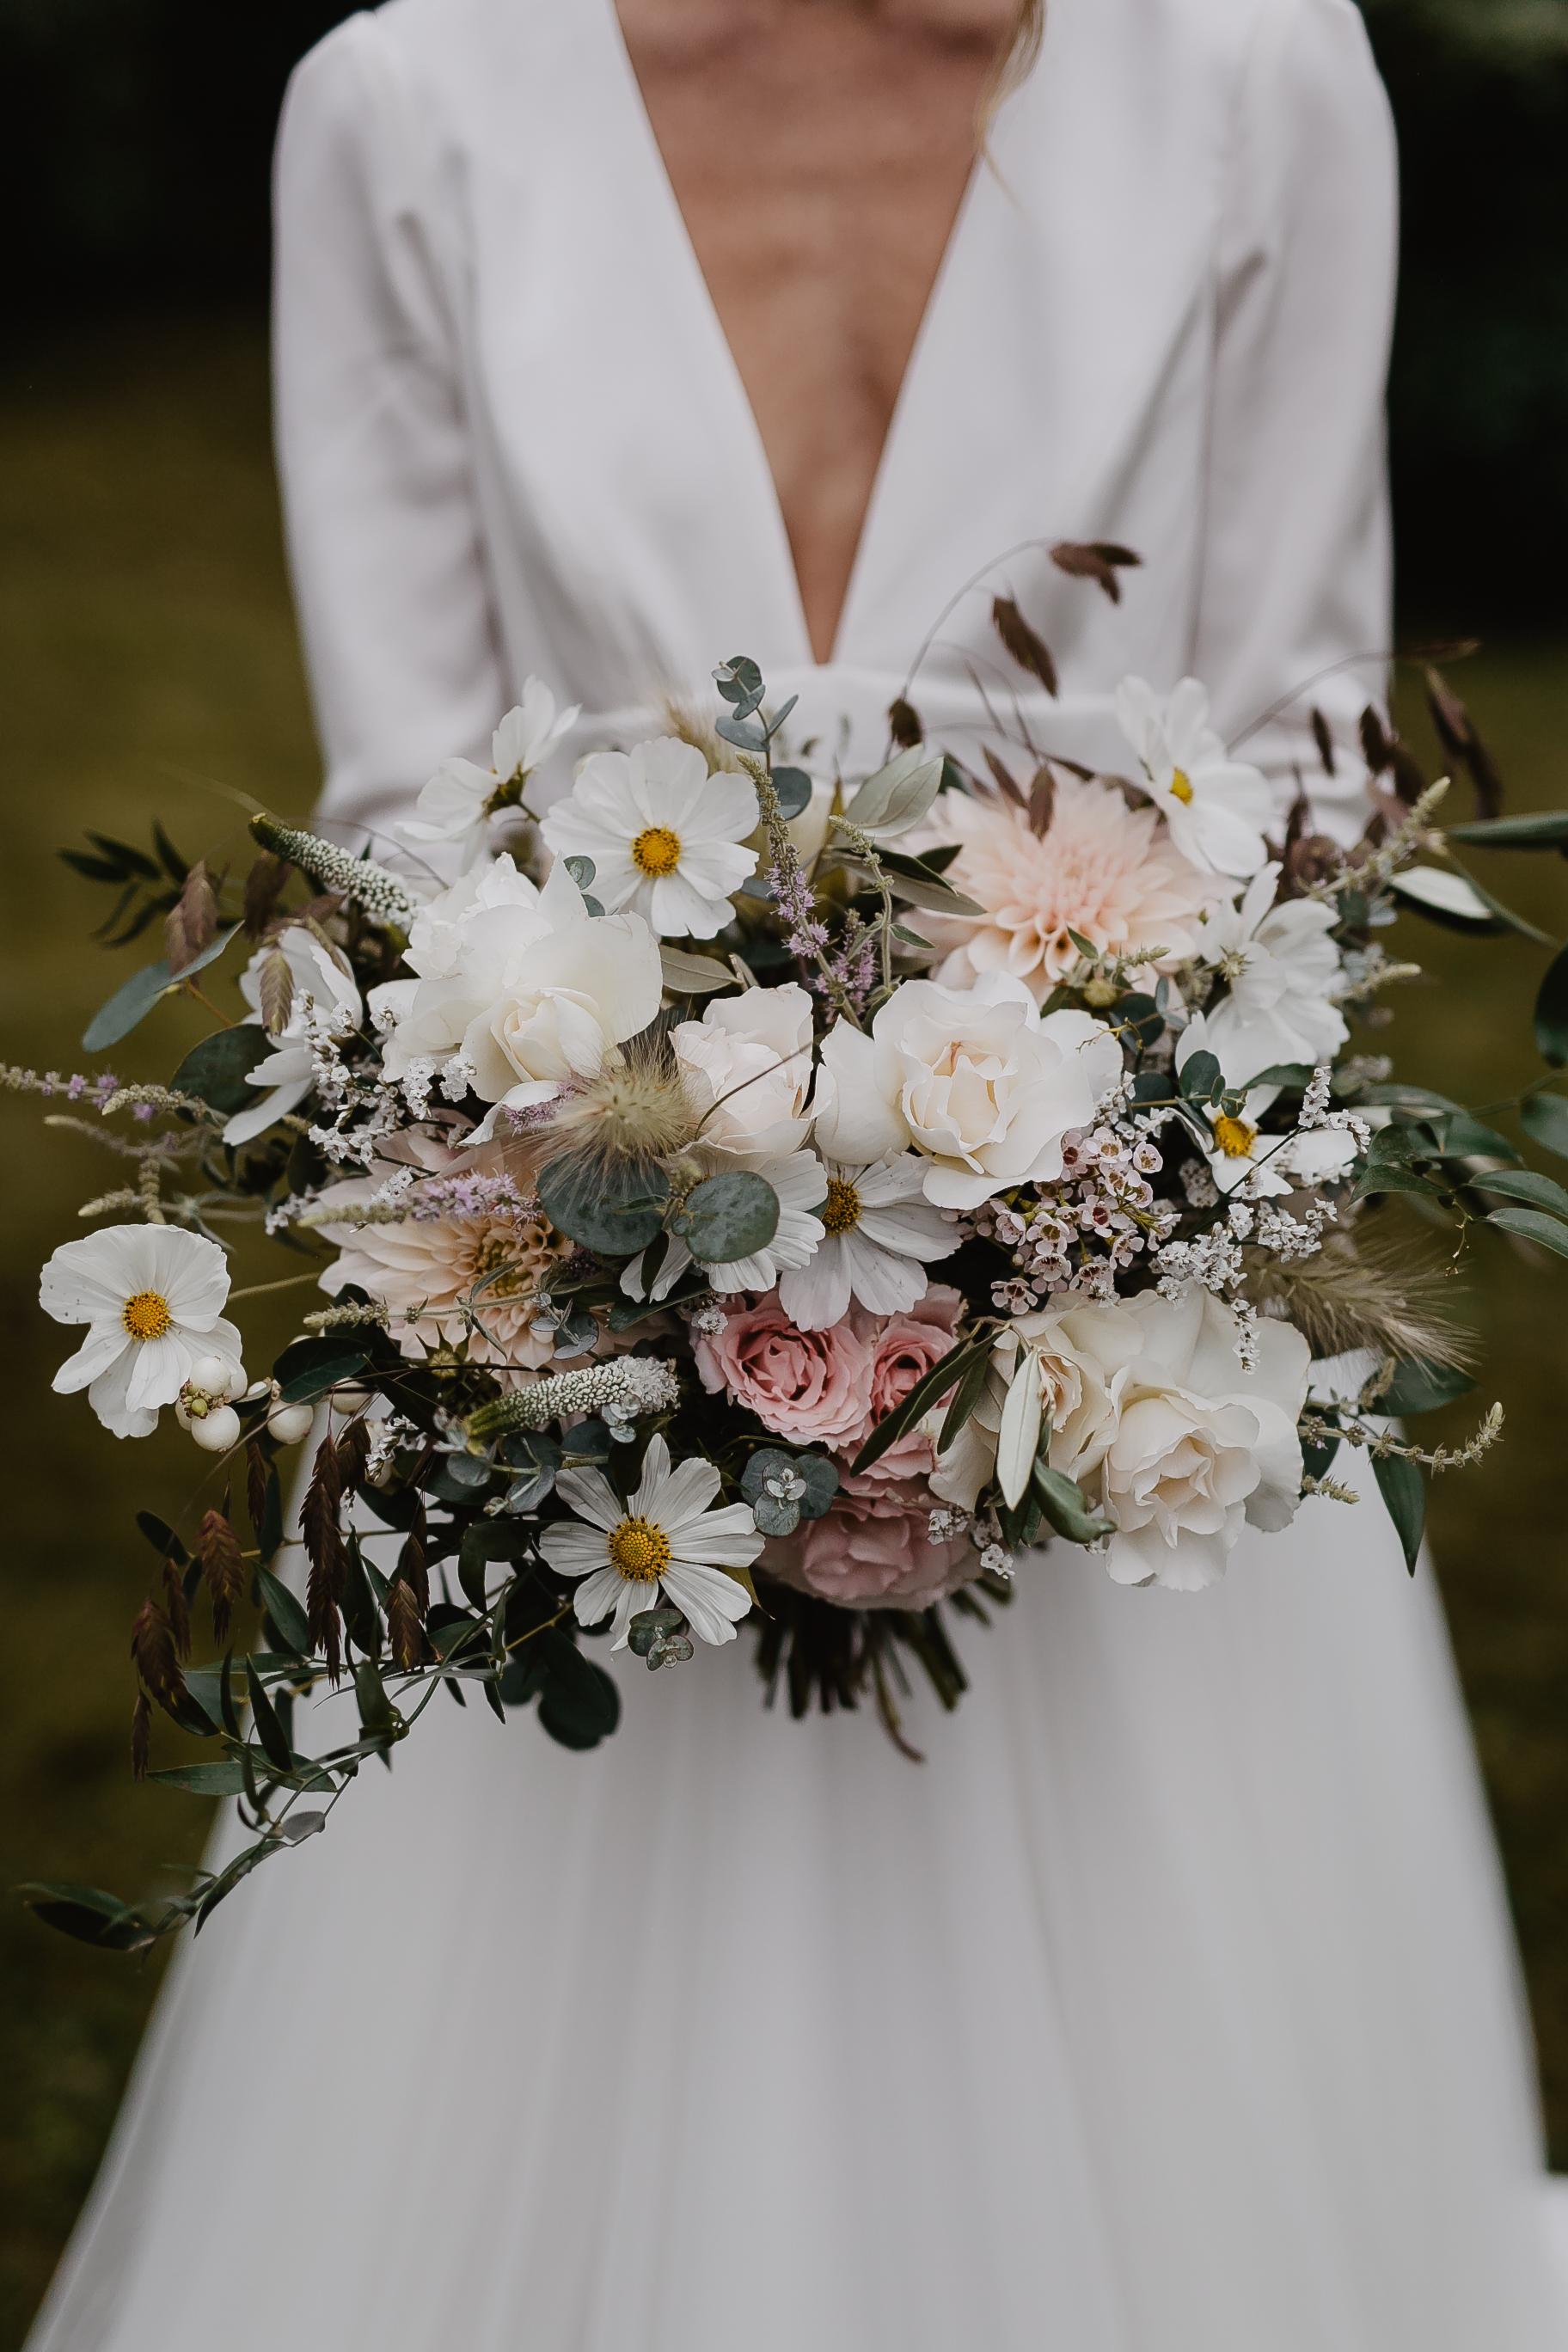 Wedding Bouquet With Wild Grasses, Cosmos, Roses And Dahlias